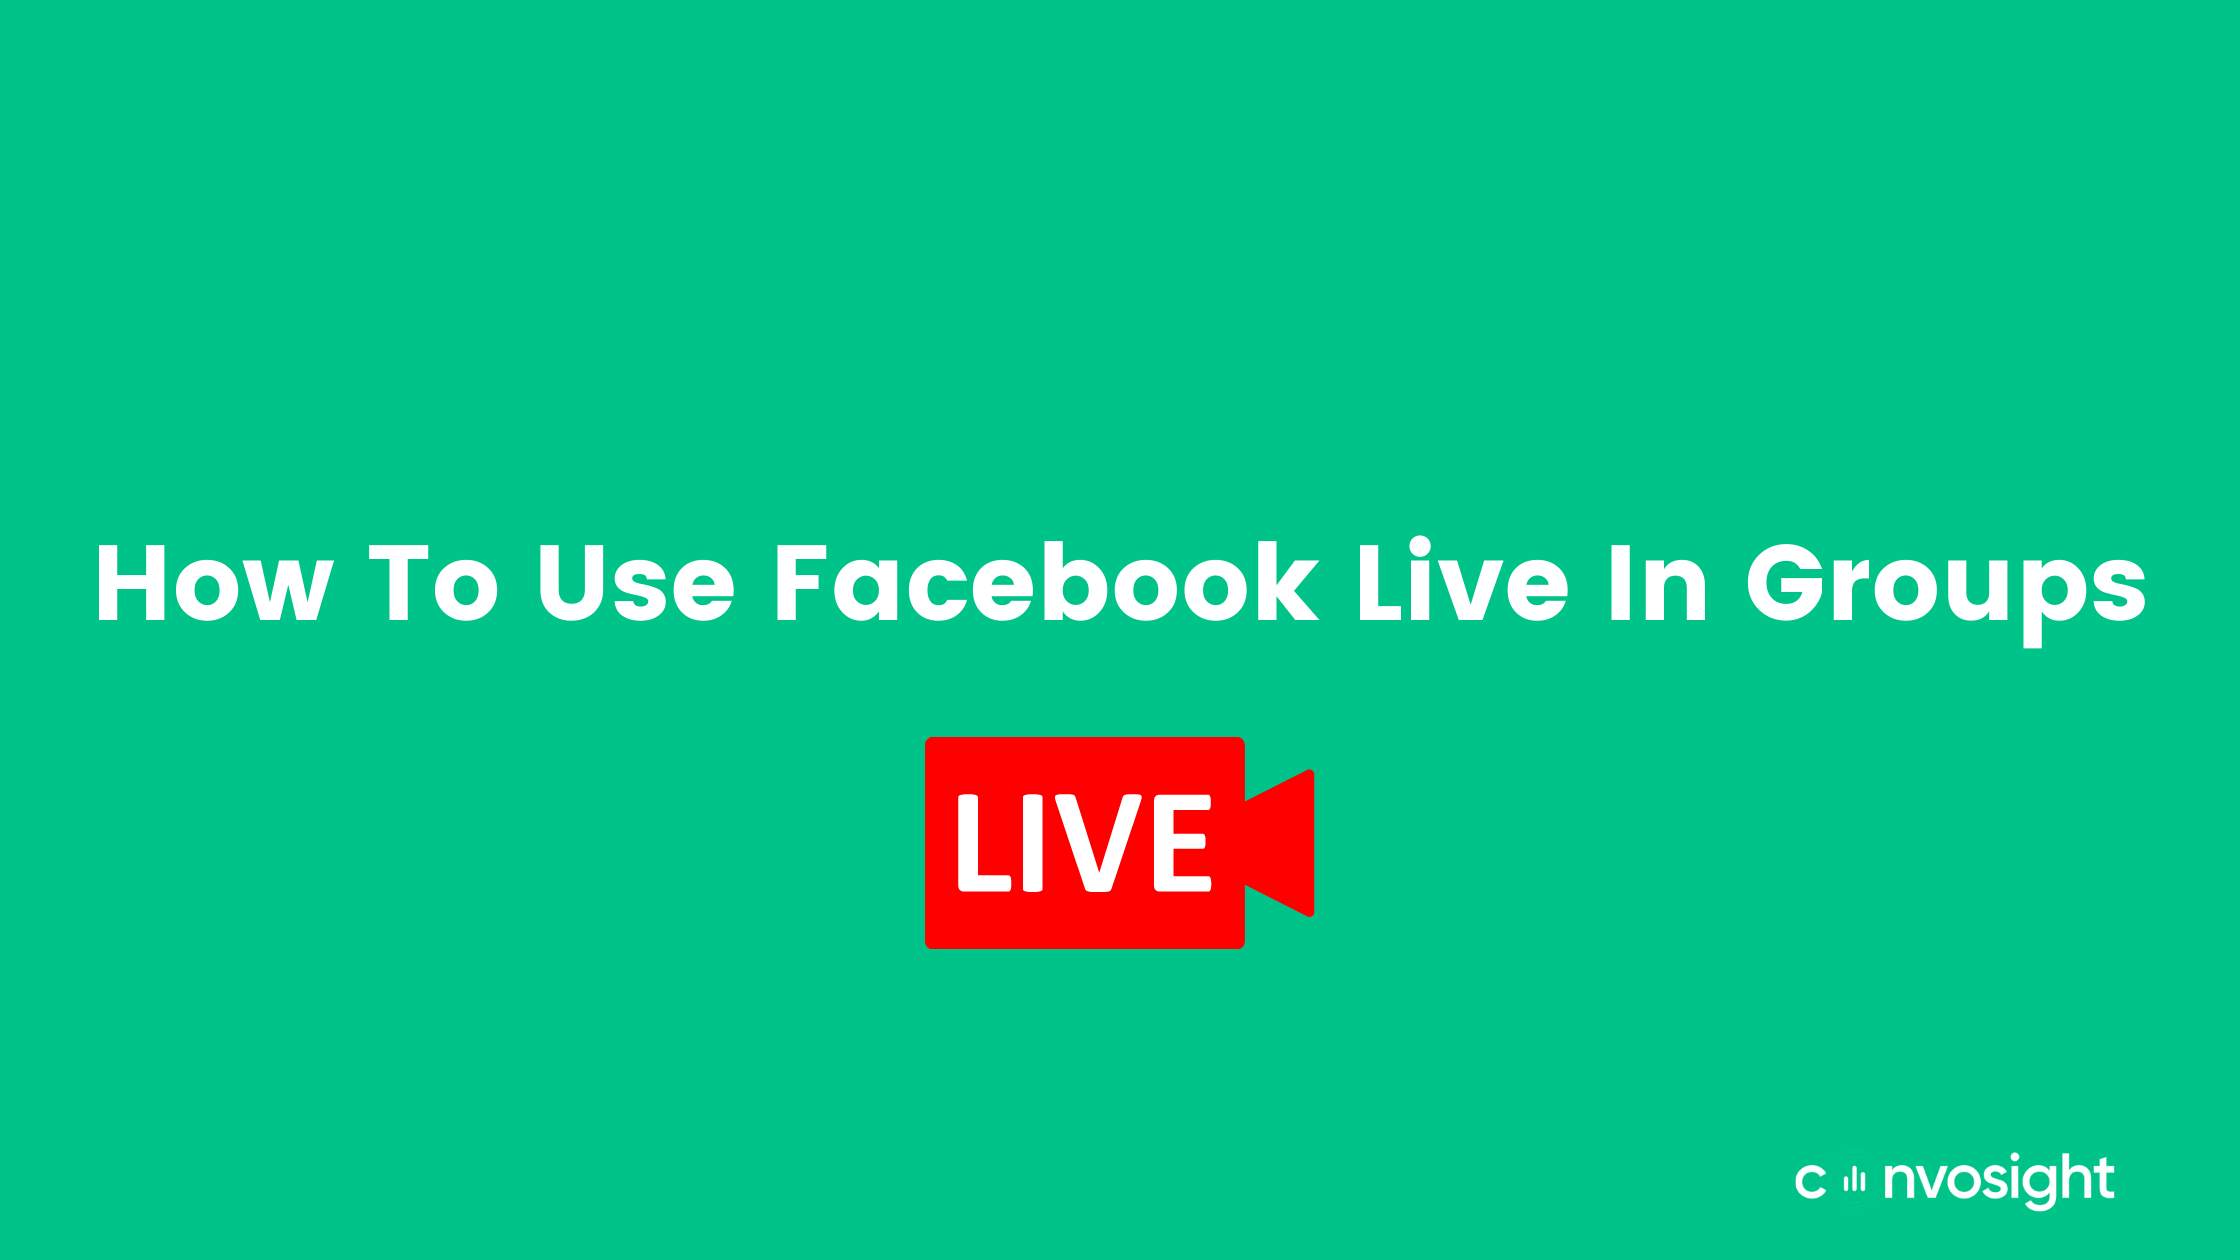 How-To-Use-Facebook-Live-In-Groups-Convosight